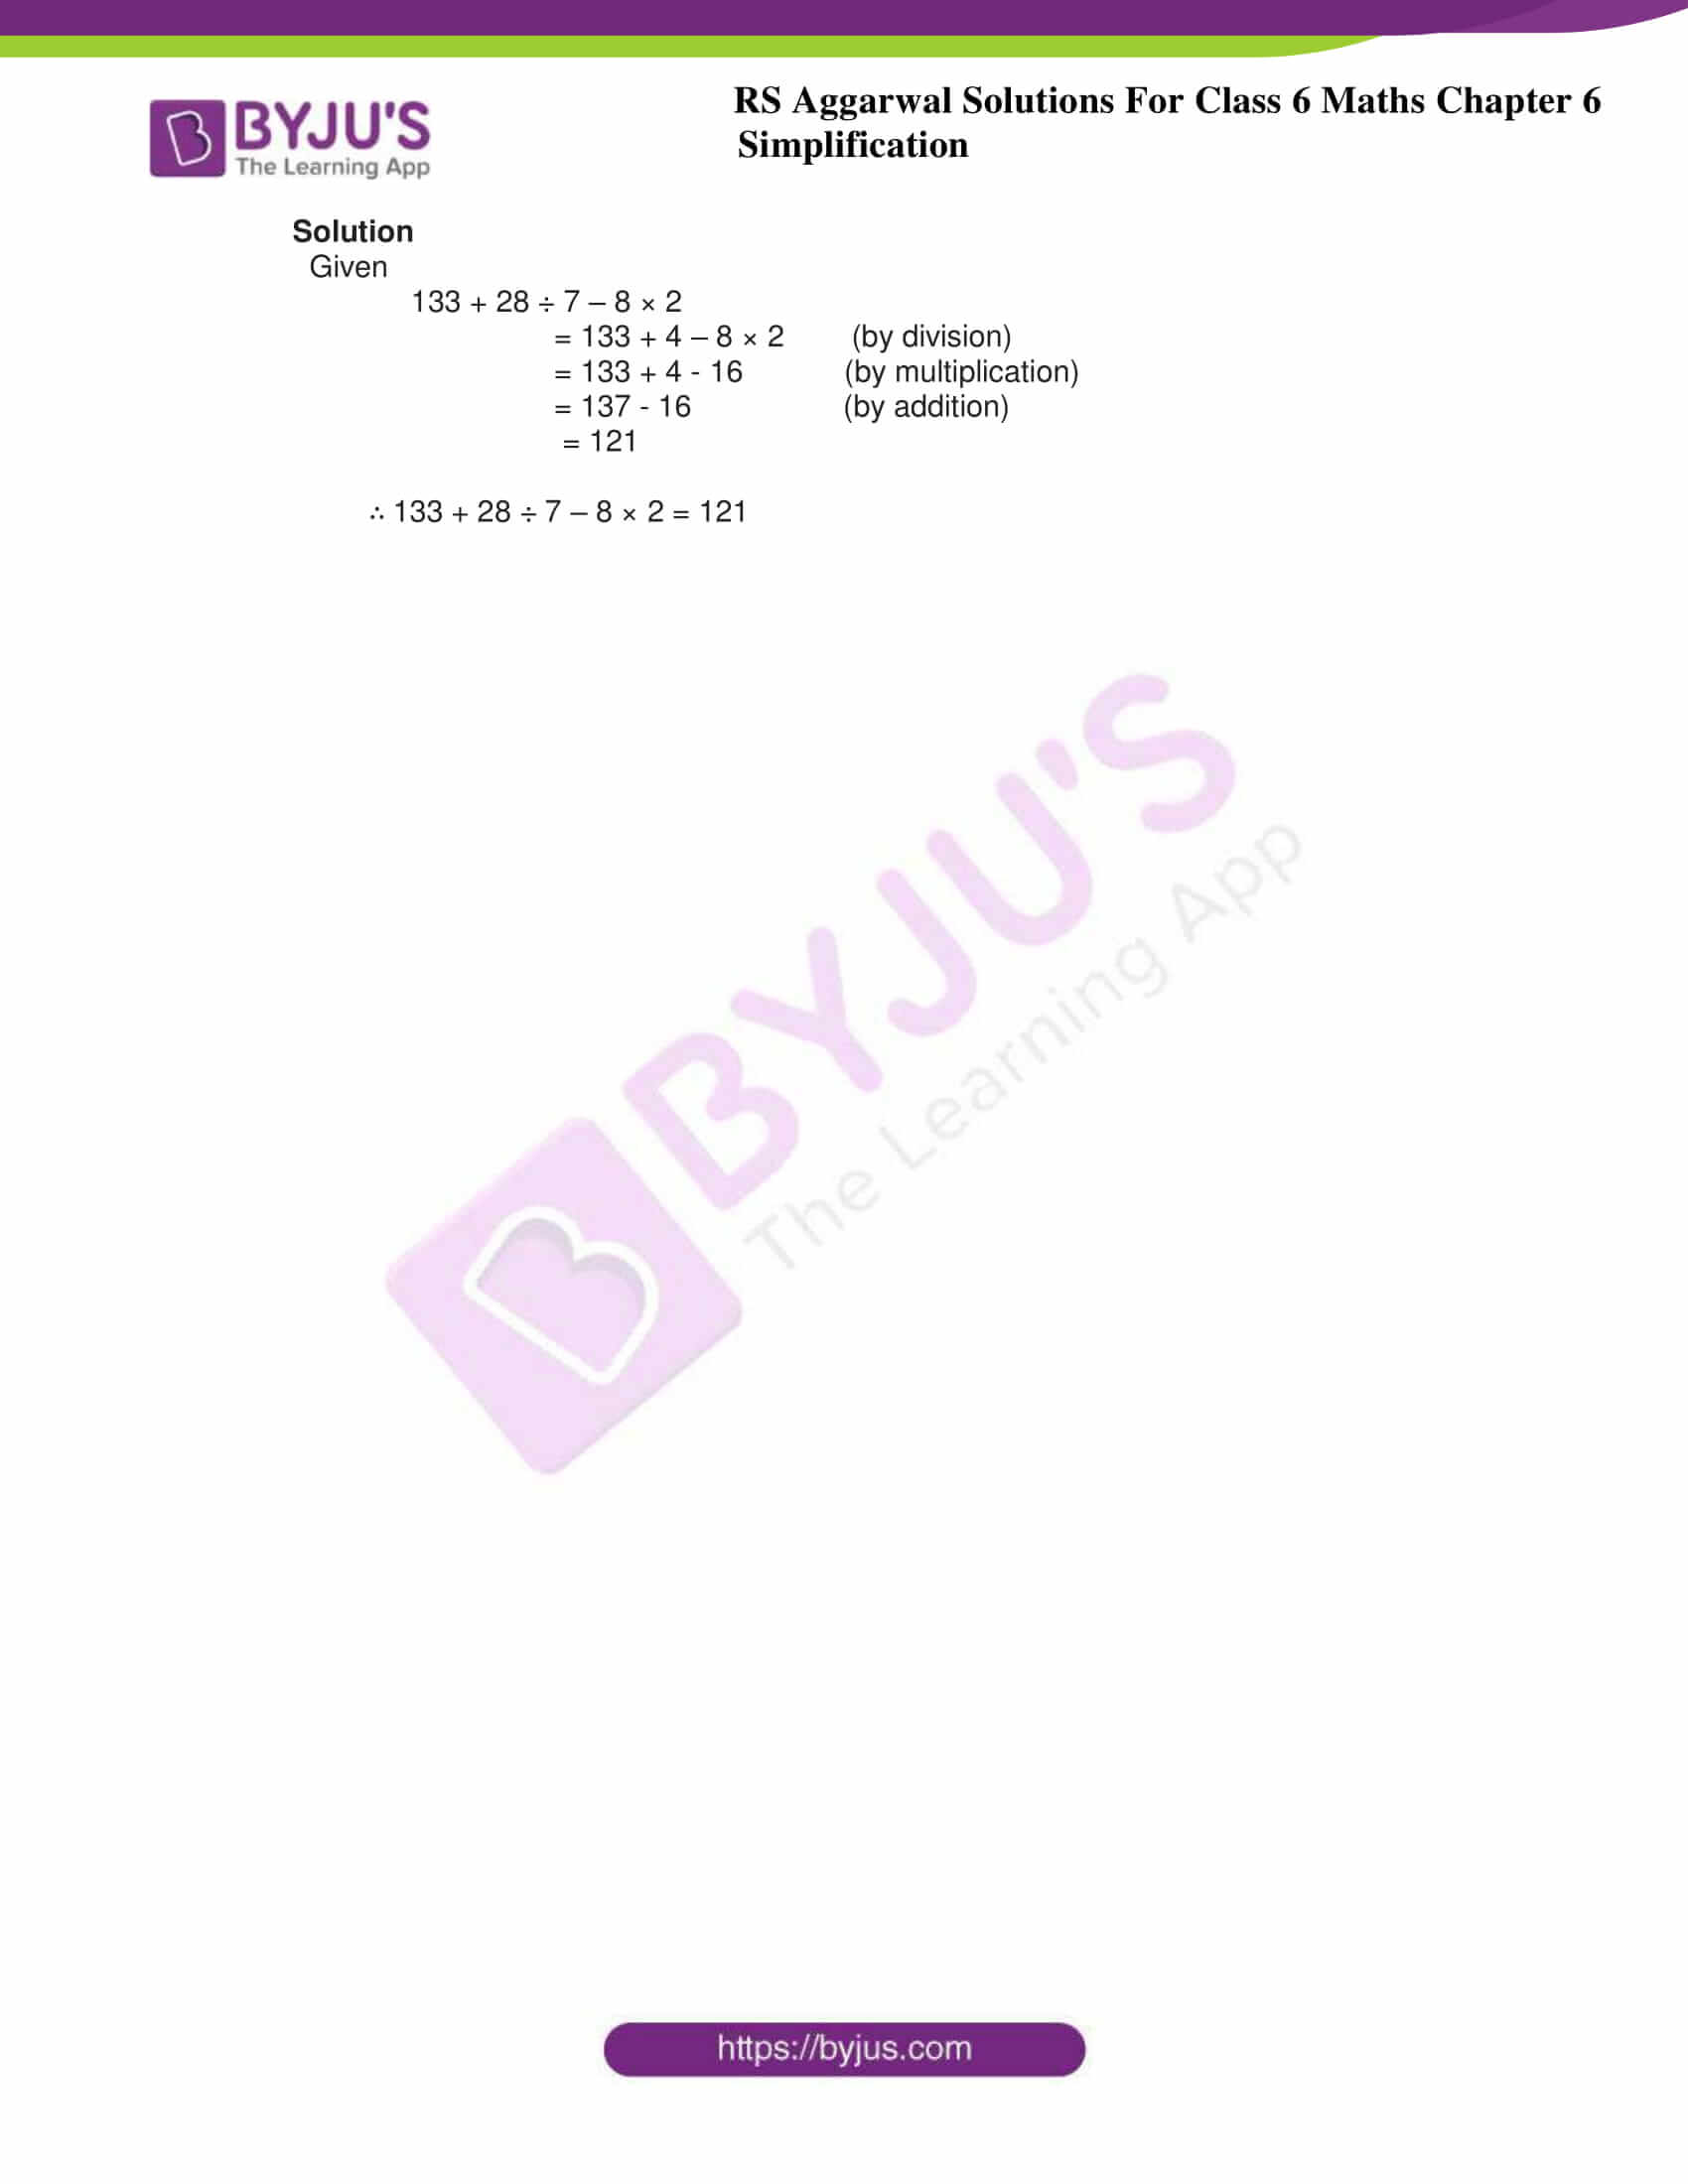 rs aggarwal solution class 6 maths chapter 6